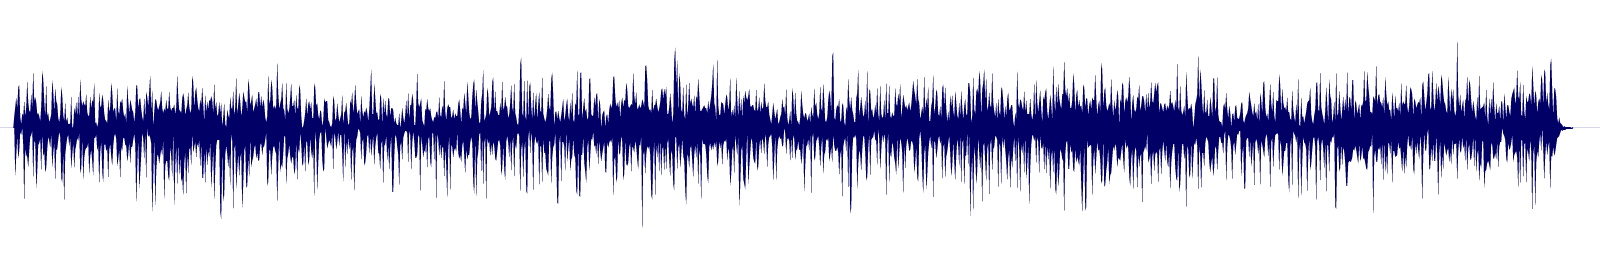 waveform of track #108546